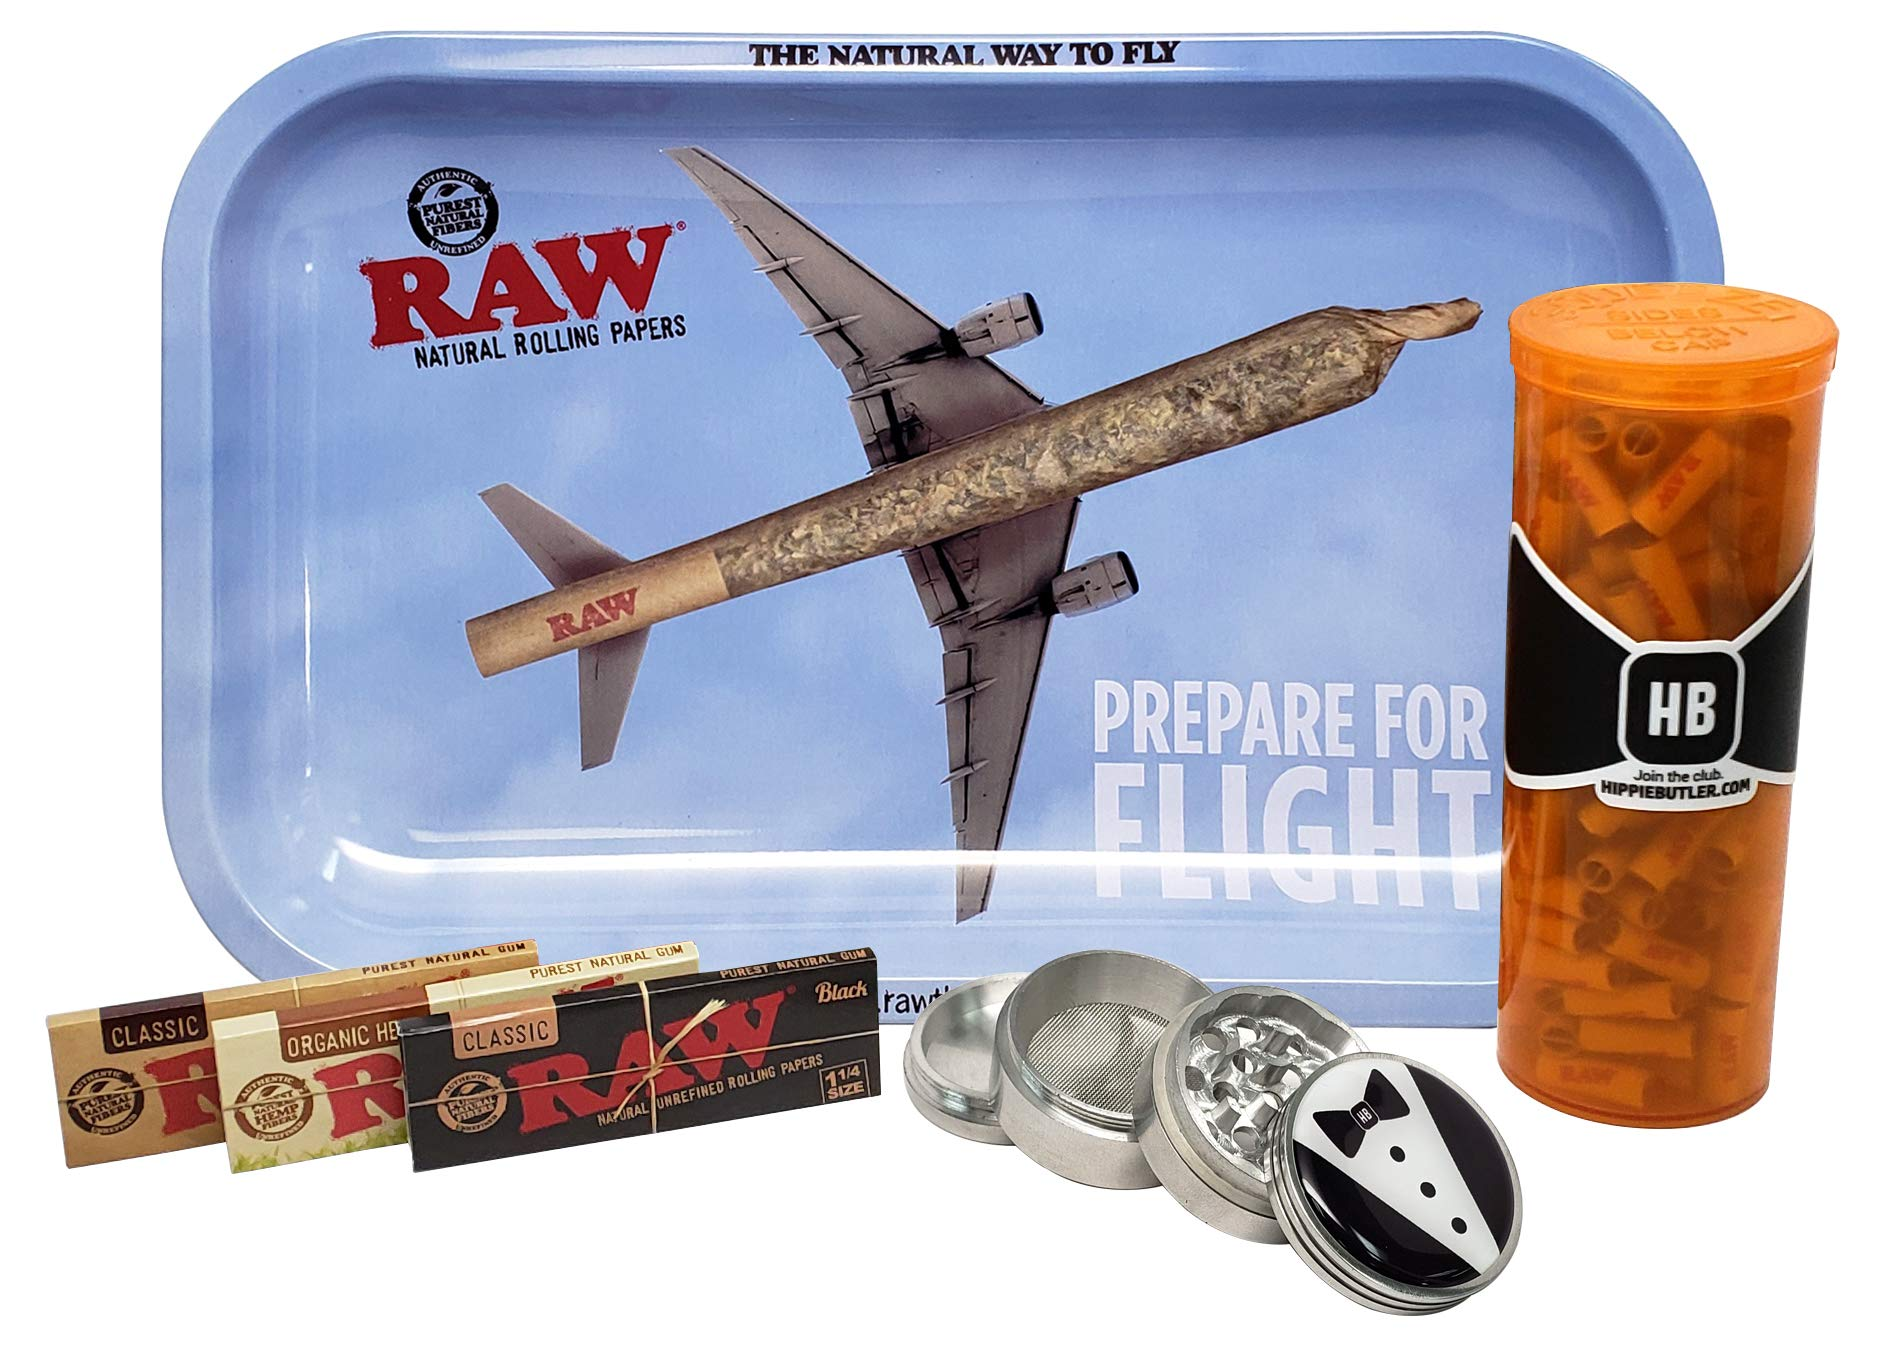 RAW Rolling Tray Small (Prepare for Flight) with RAW 1 1/4 Rolling Papers (Pack Each Classic, Organic and Black), 189 RAW Pre Rolled Tips, Hippie Butler 42mm Grinder and Pop Top Container